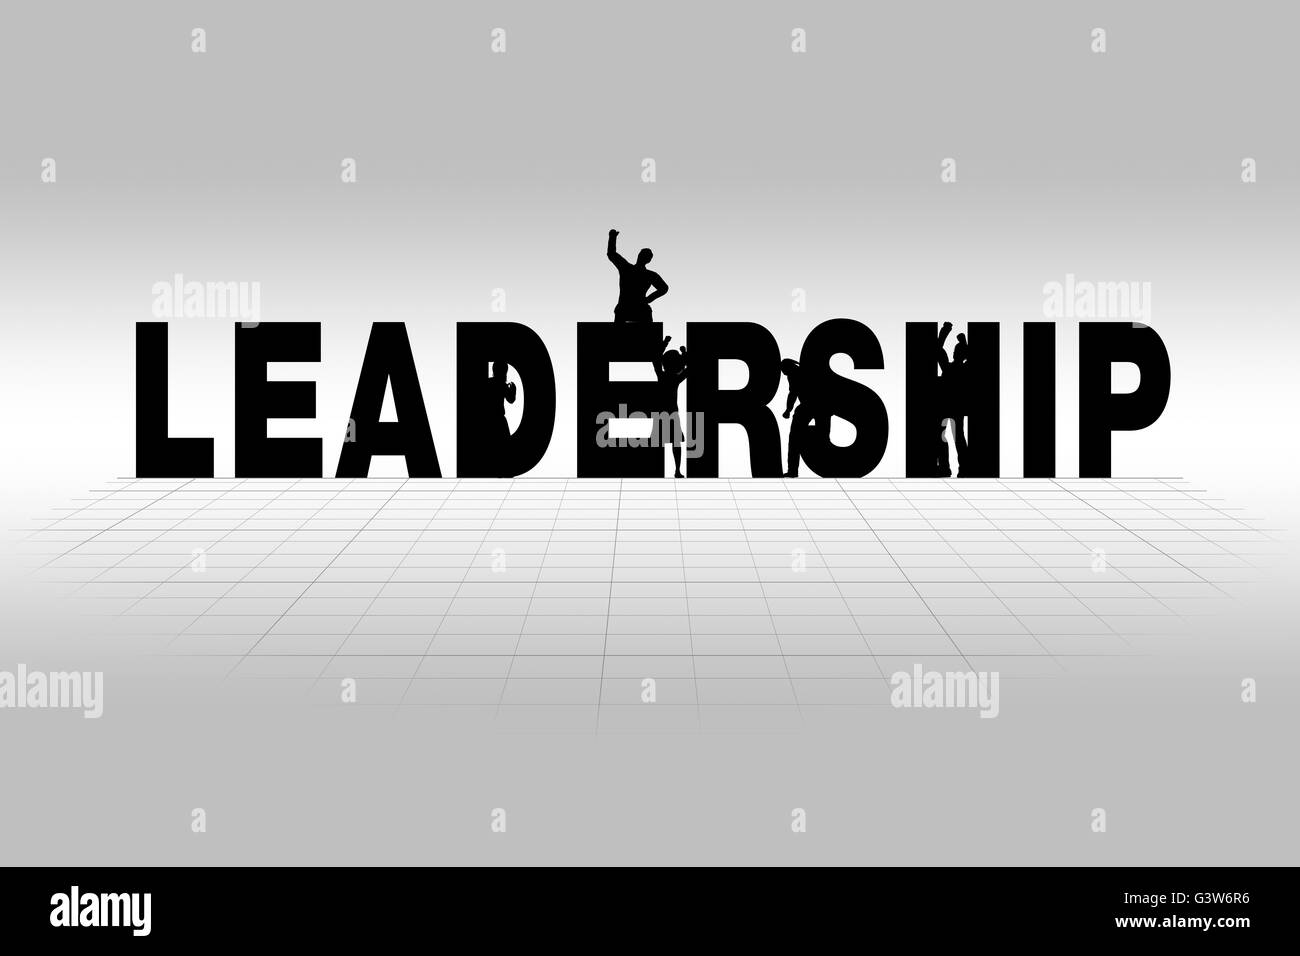 Leadership word communicating business concept of leadership in silhouette. - Stock Image